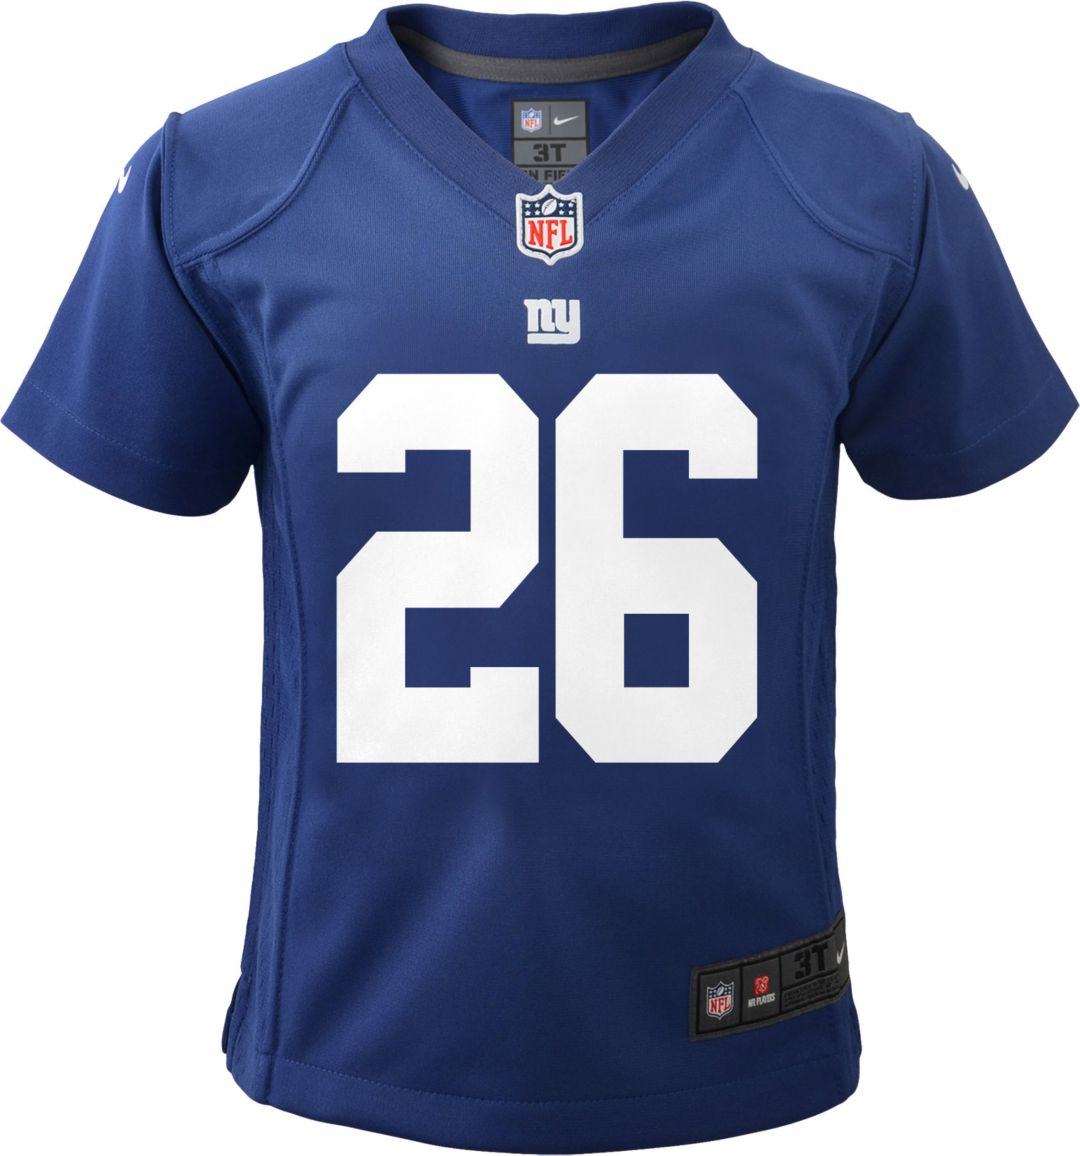 premium selection a4119 82ced Nike Toddler Home Game Jersey New York Giants Saquon Barkley #26